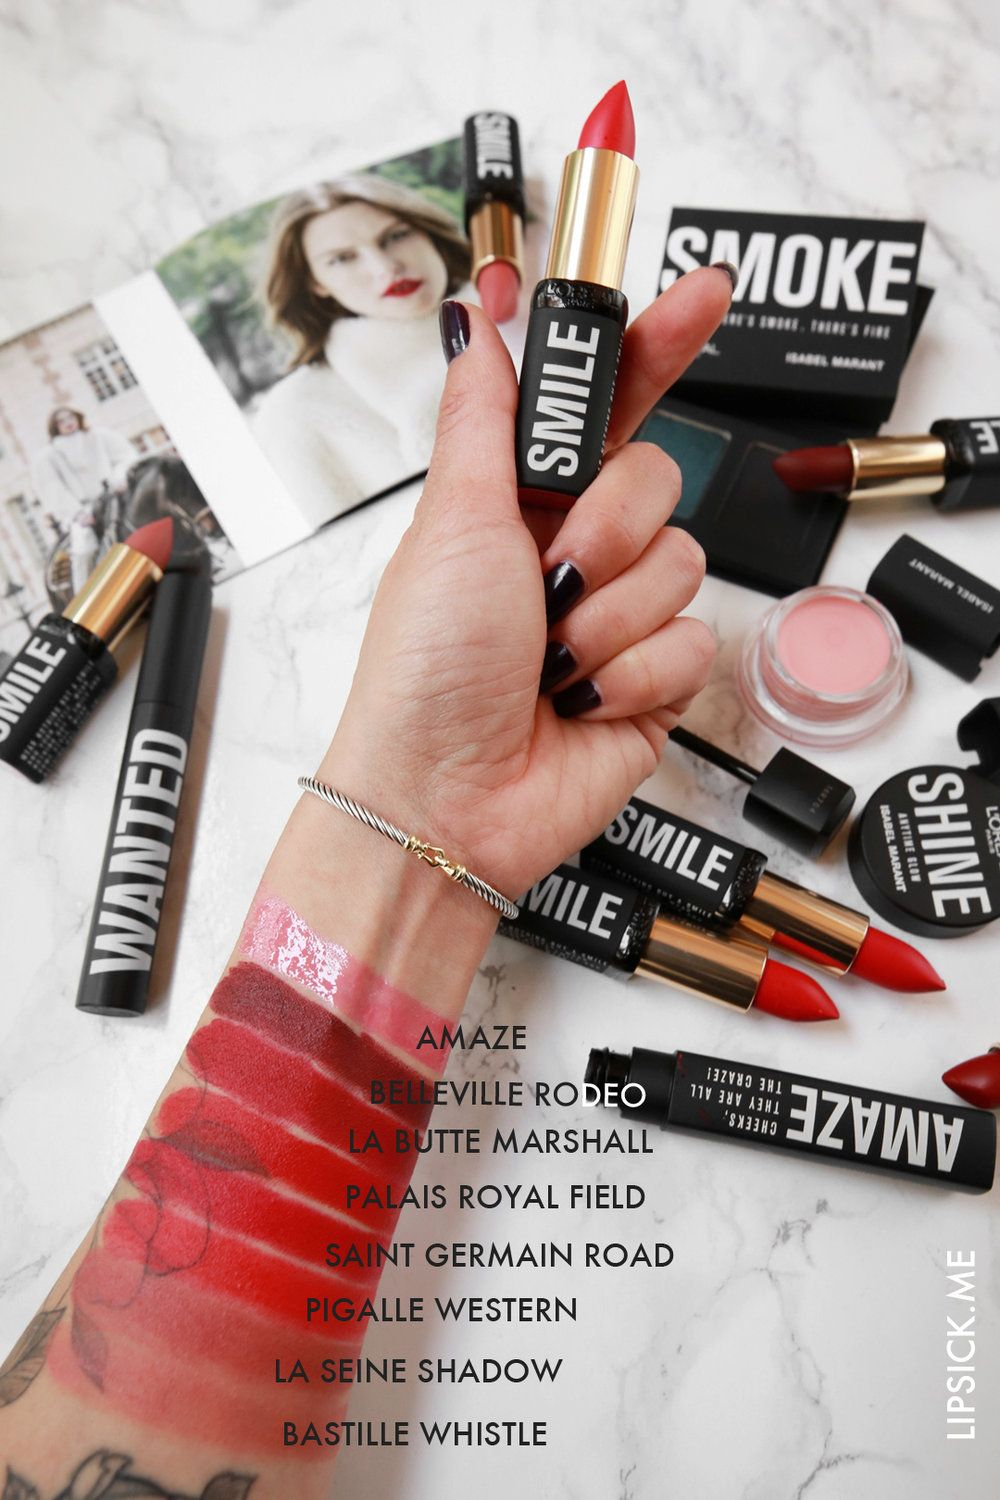 L'ORÉAL x ISABEL MARANT THE ENTIRE WANTED COLLECTION